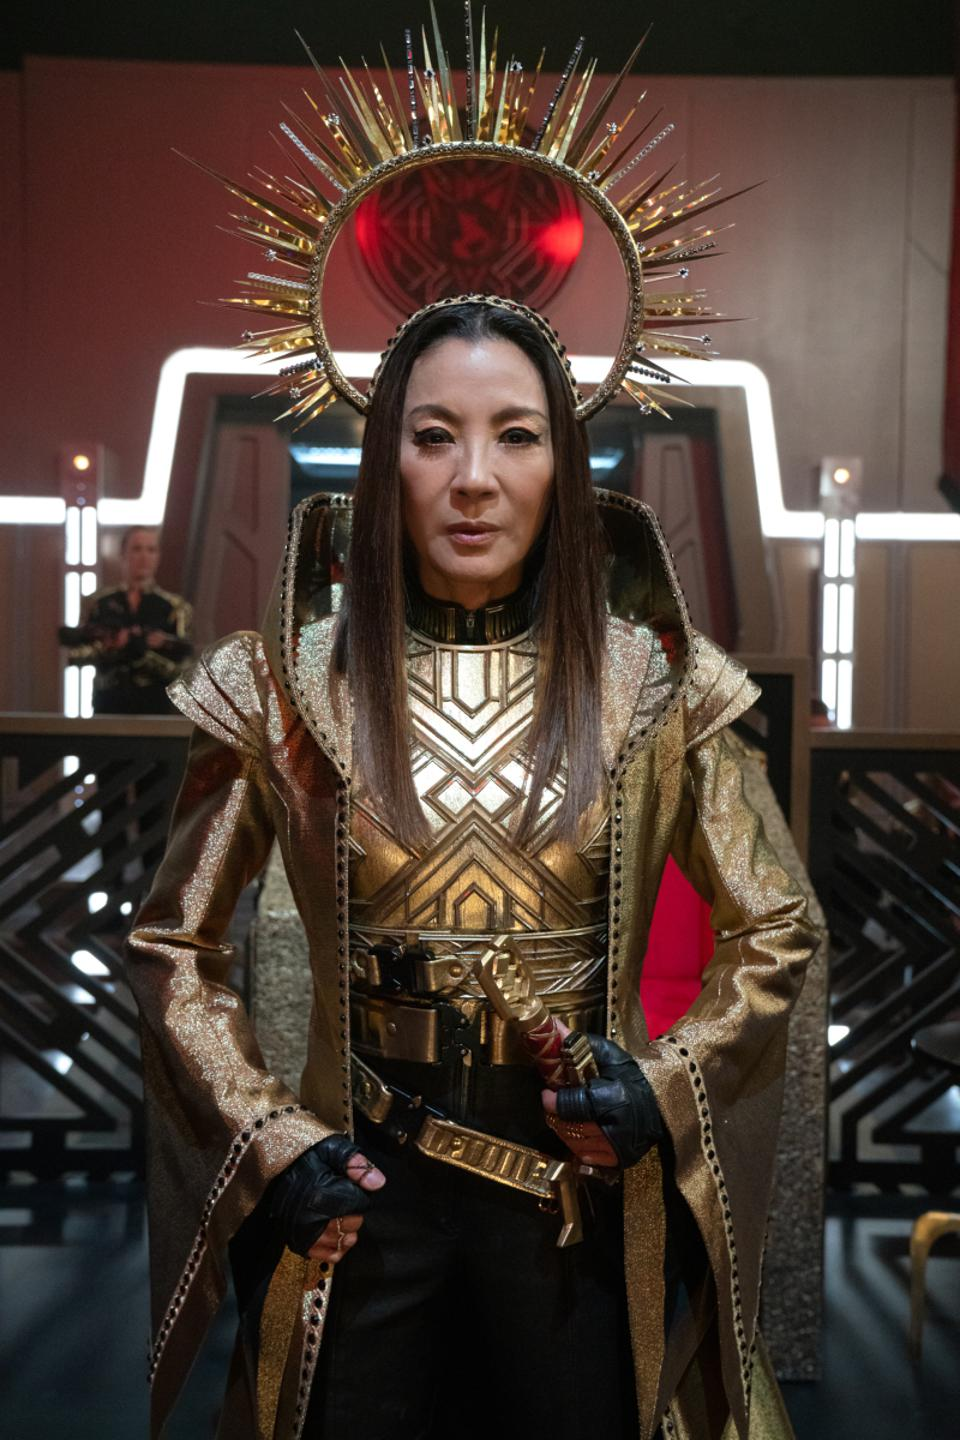 Empress Georgiou wears a fanciful headdress to a ceremony in Star Trek: Discovery